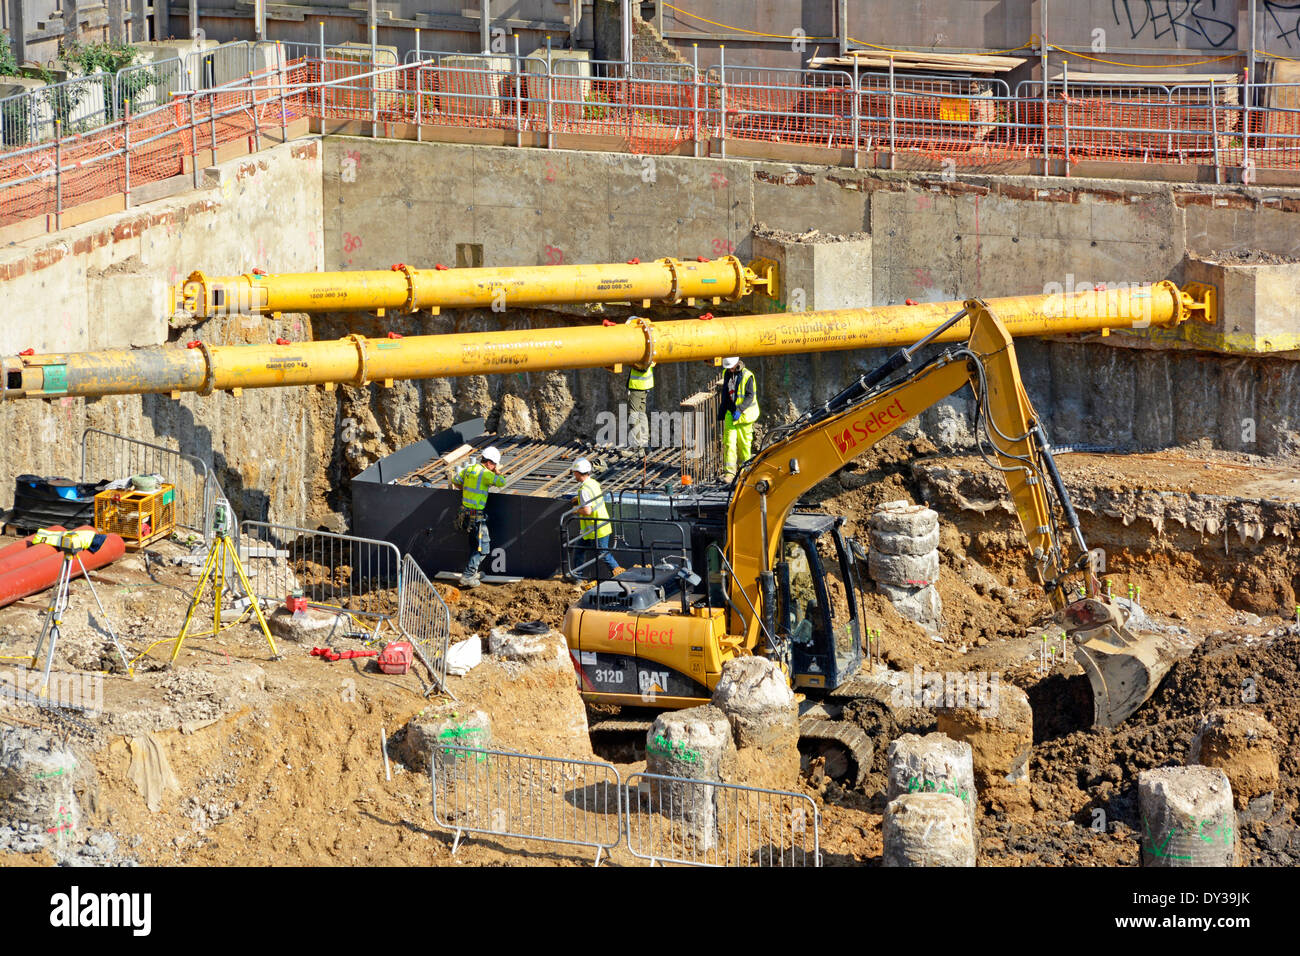 Diagonal shoring struts in pace across corners of retaining walls on large construction site with men working below - Stock Image